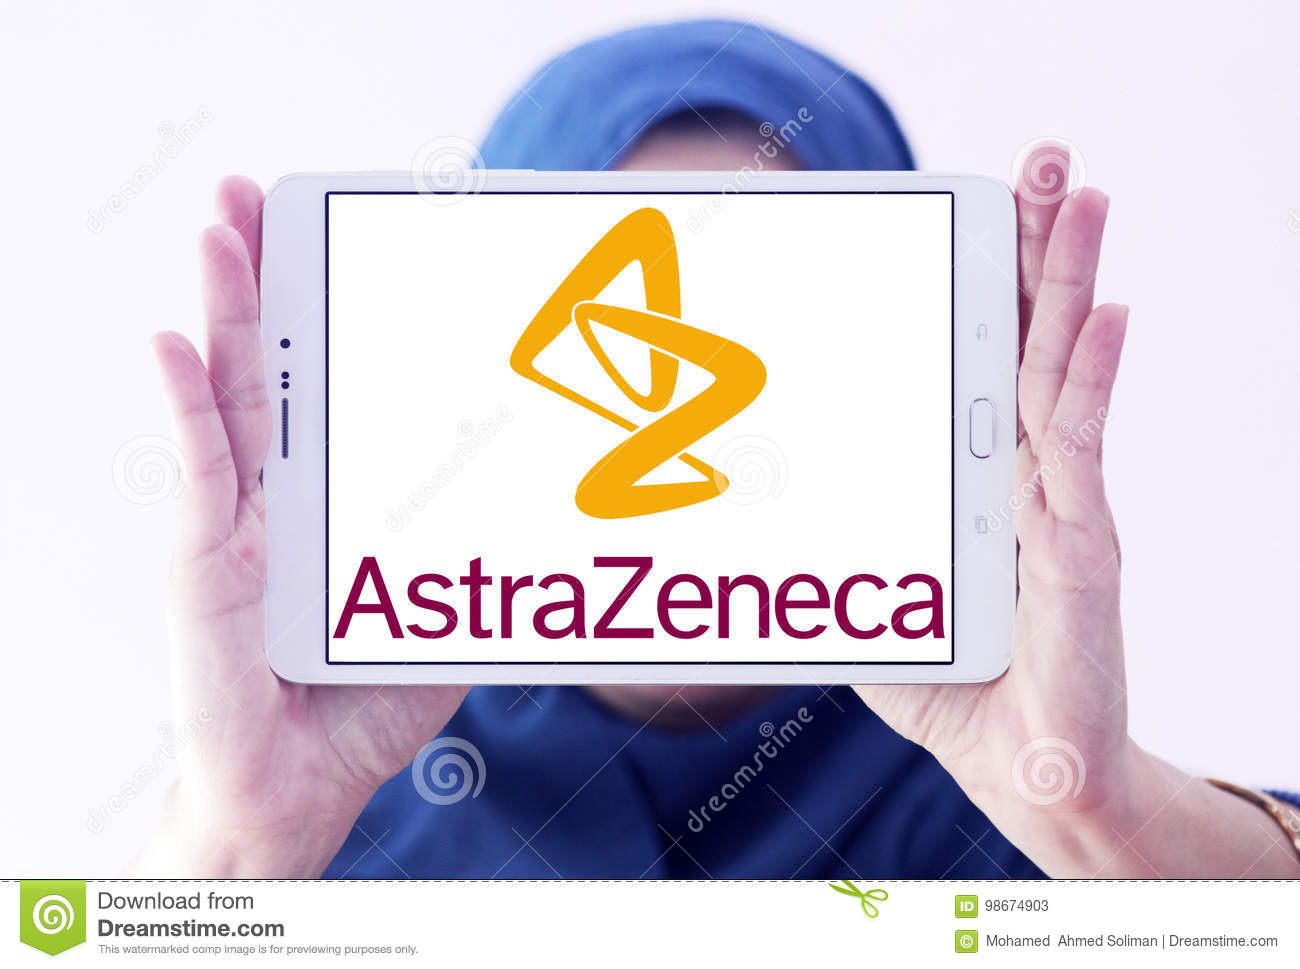 Astrazeneca stock symbol gallery symbol and sign ideas astrazeneca pharmaceutical company logo editorial stock photo astrazeneca pharmaceutical company logo editorial stock photo buycottarizona buycottarizona